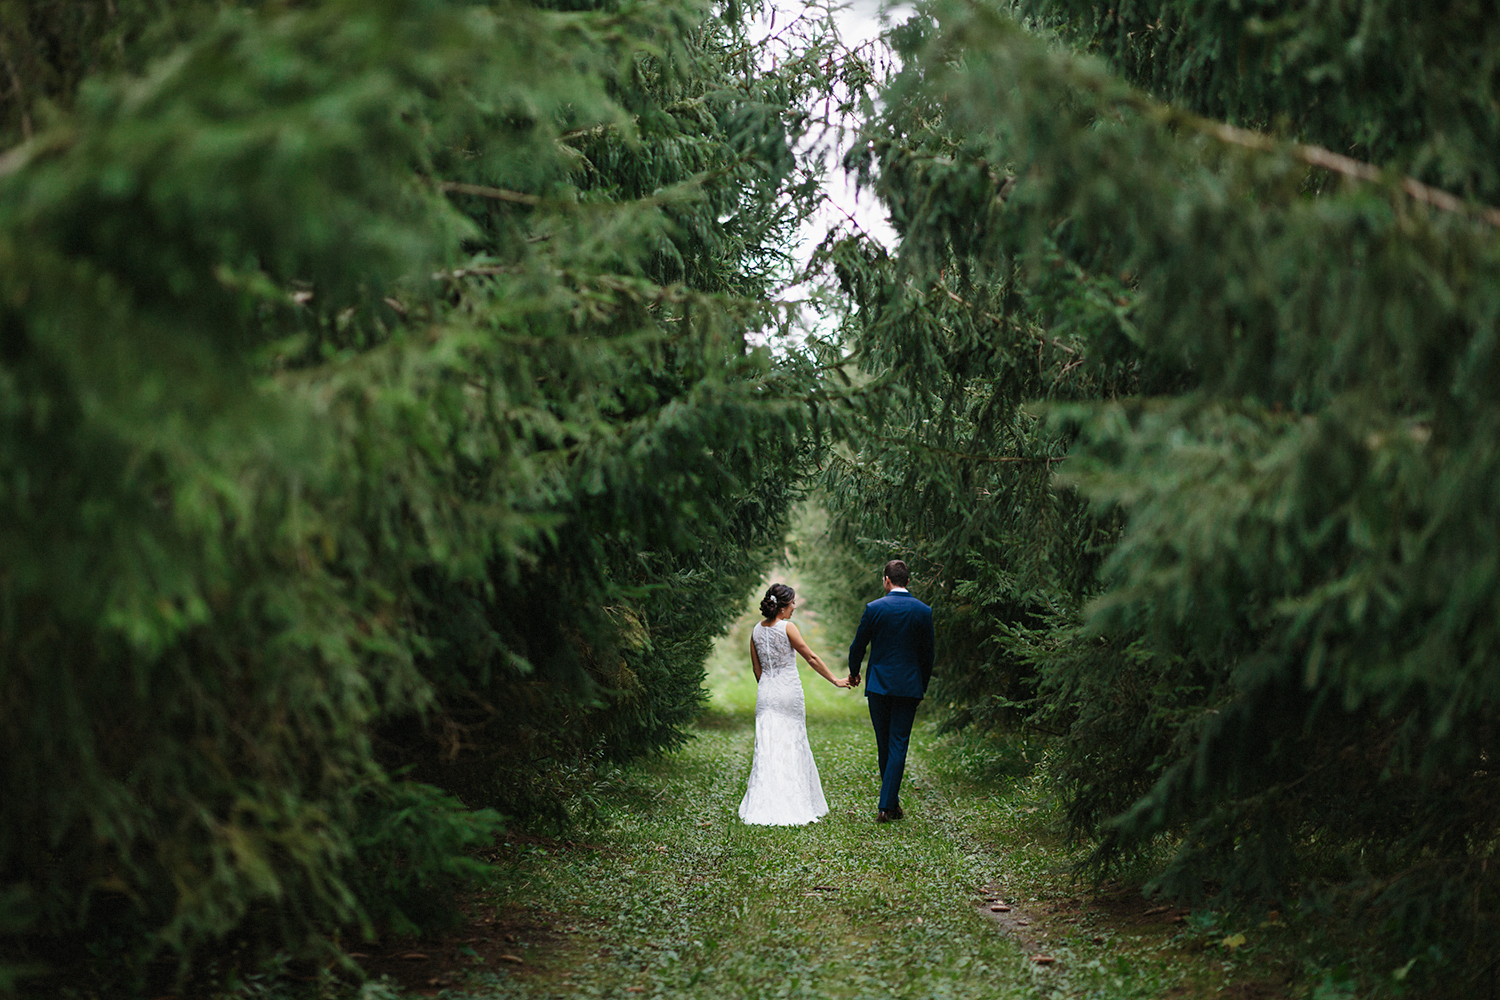 bride-and-groom-couples-portraits-in-forest-wilderness-outdoors-romantic-moody-walking-real-moments-photos-toronto's-best-wedding-photographers-candid-documentary-style-photography-london-ontario-winery-wedding-inspiration.jpg